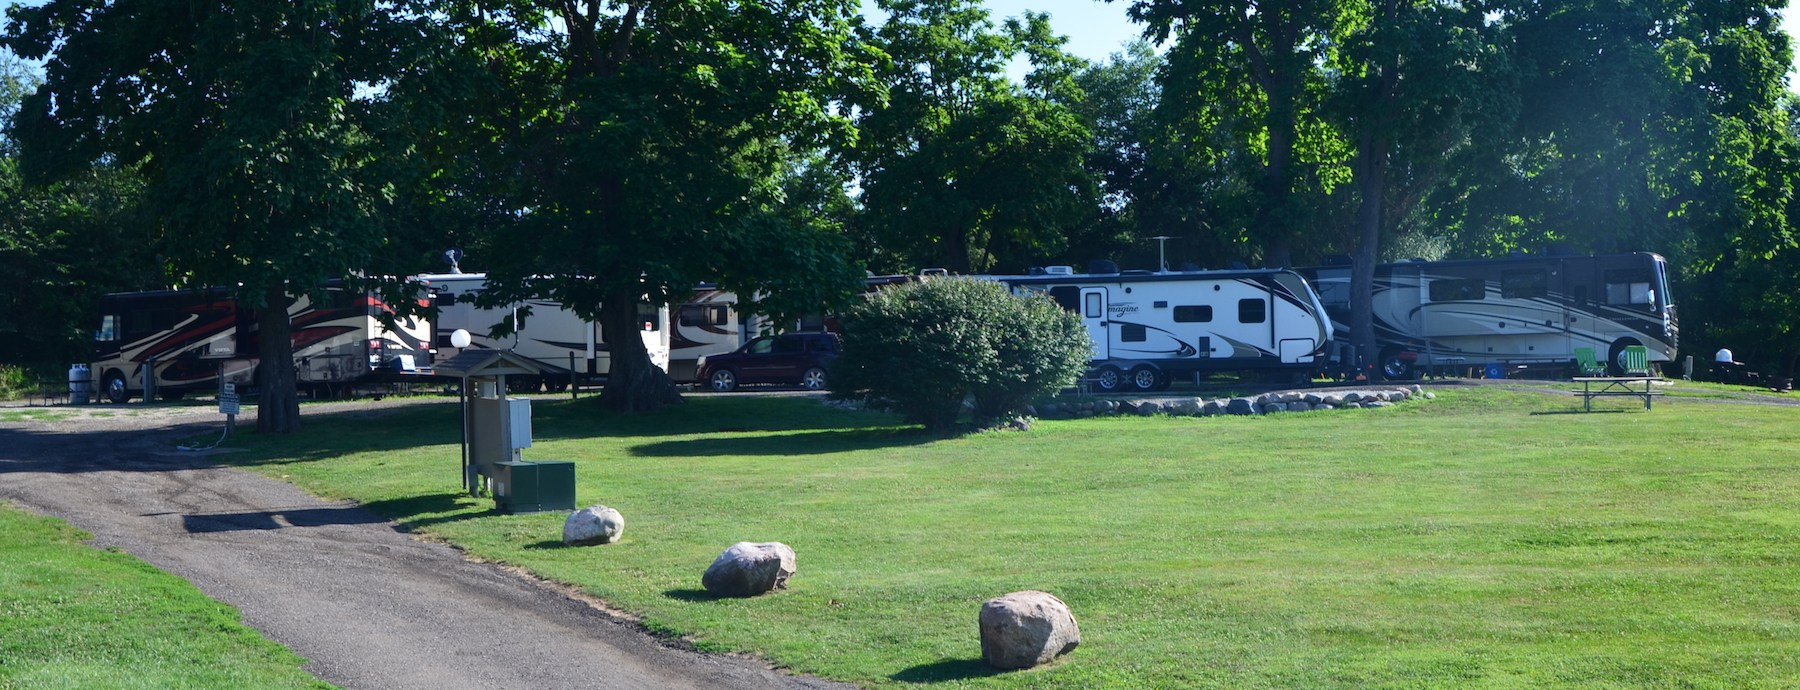 Timberline Campground Rv Park Camping Near Des Moines Ia